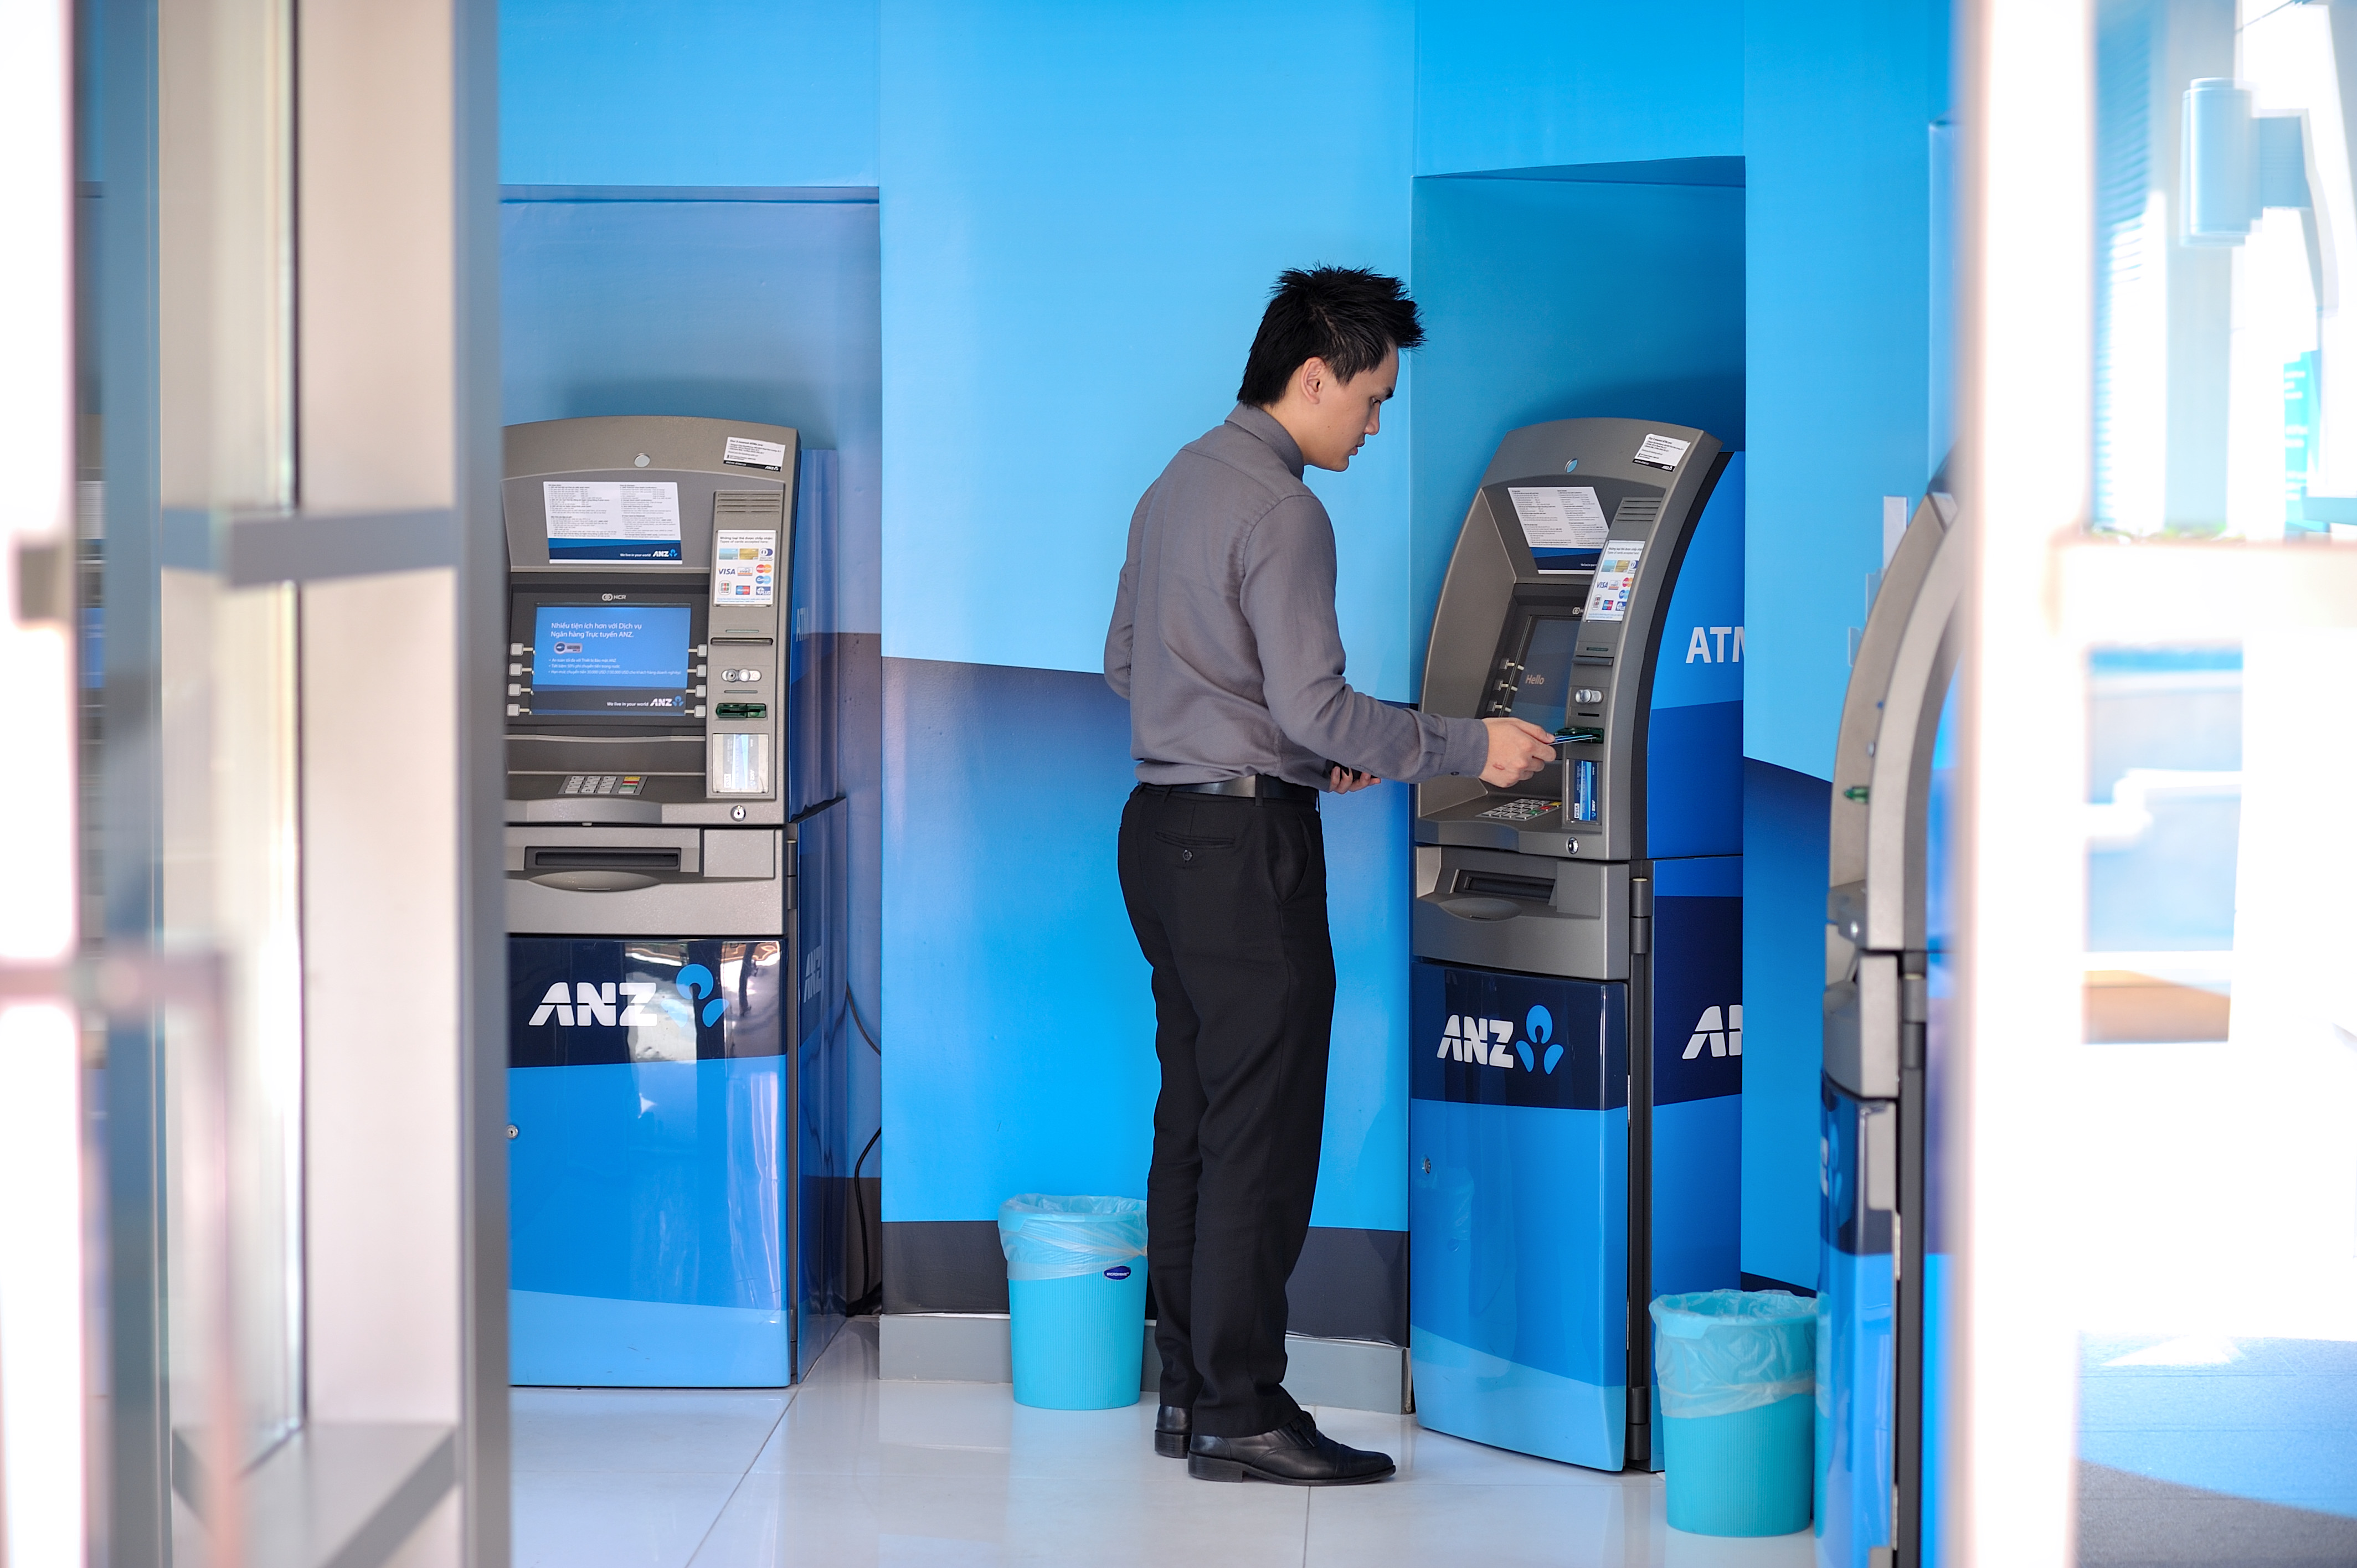 Research paper on atm services